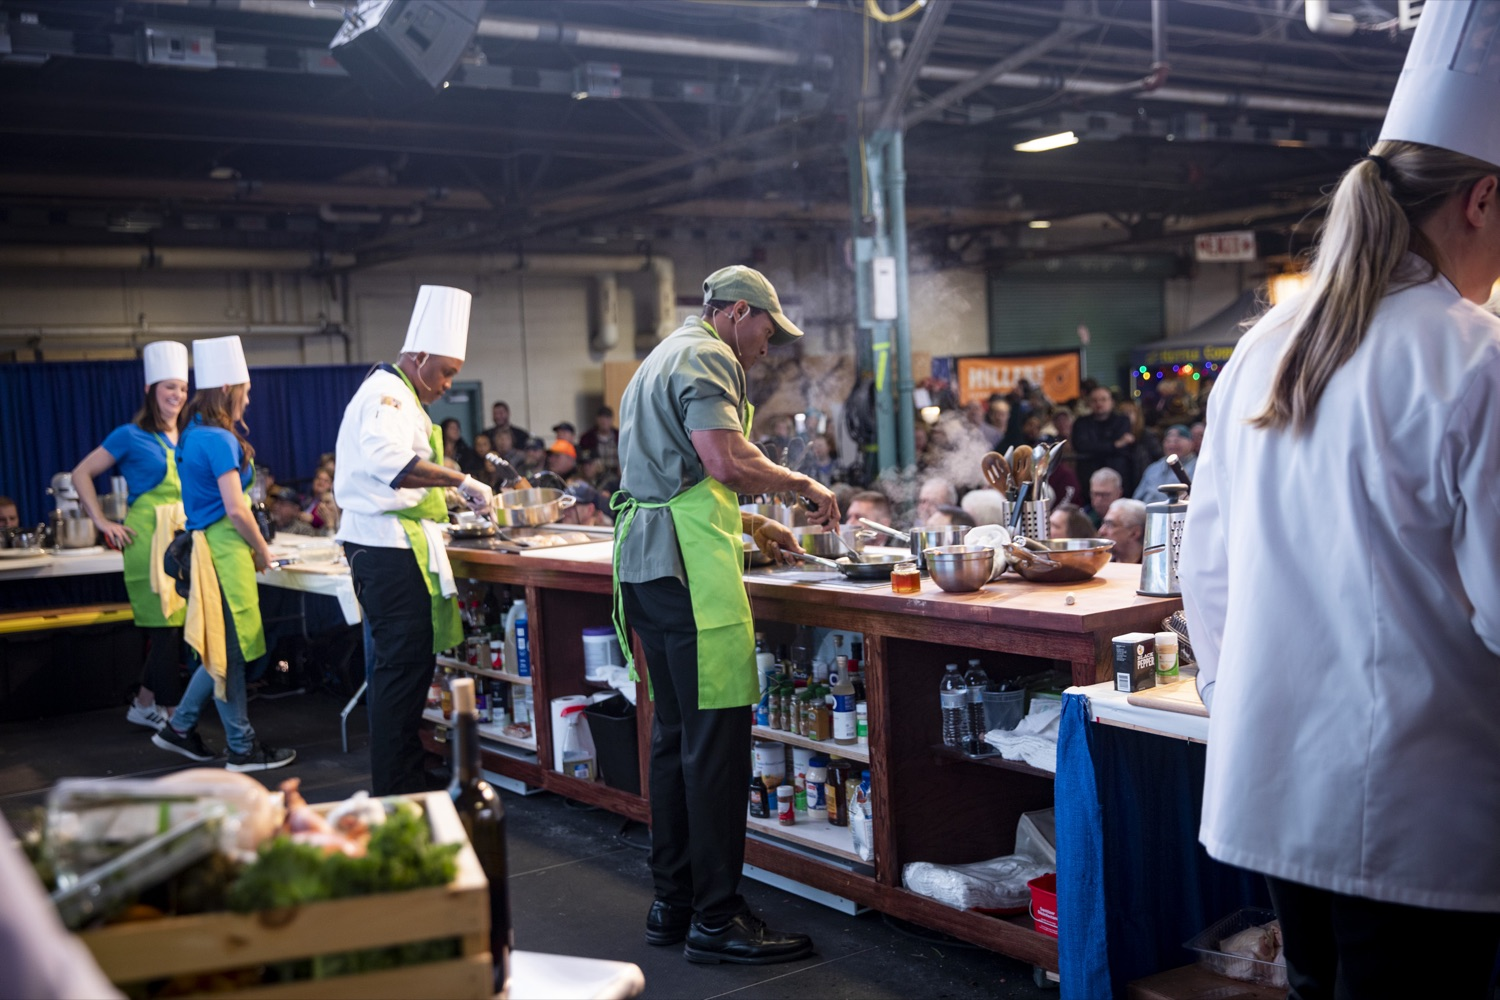 """<a href=""""http://filesource.abacast.com/commonwealthofpa/photo/17651_AGRIC_ARMY_NAVY_COOKOFF_CZ_10.jpg"""" target=""""_blank"""">⇣Download Photo<br></a>Culinary Specialist First Class Marlon ONeil Haughton and Sergeant Pete O. Linton, Advanced Culinary NCO of the Army, compete in the 2020 Army vs. Navy Cook-Off in Harrisburg on January 9, 2020."""